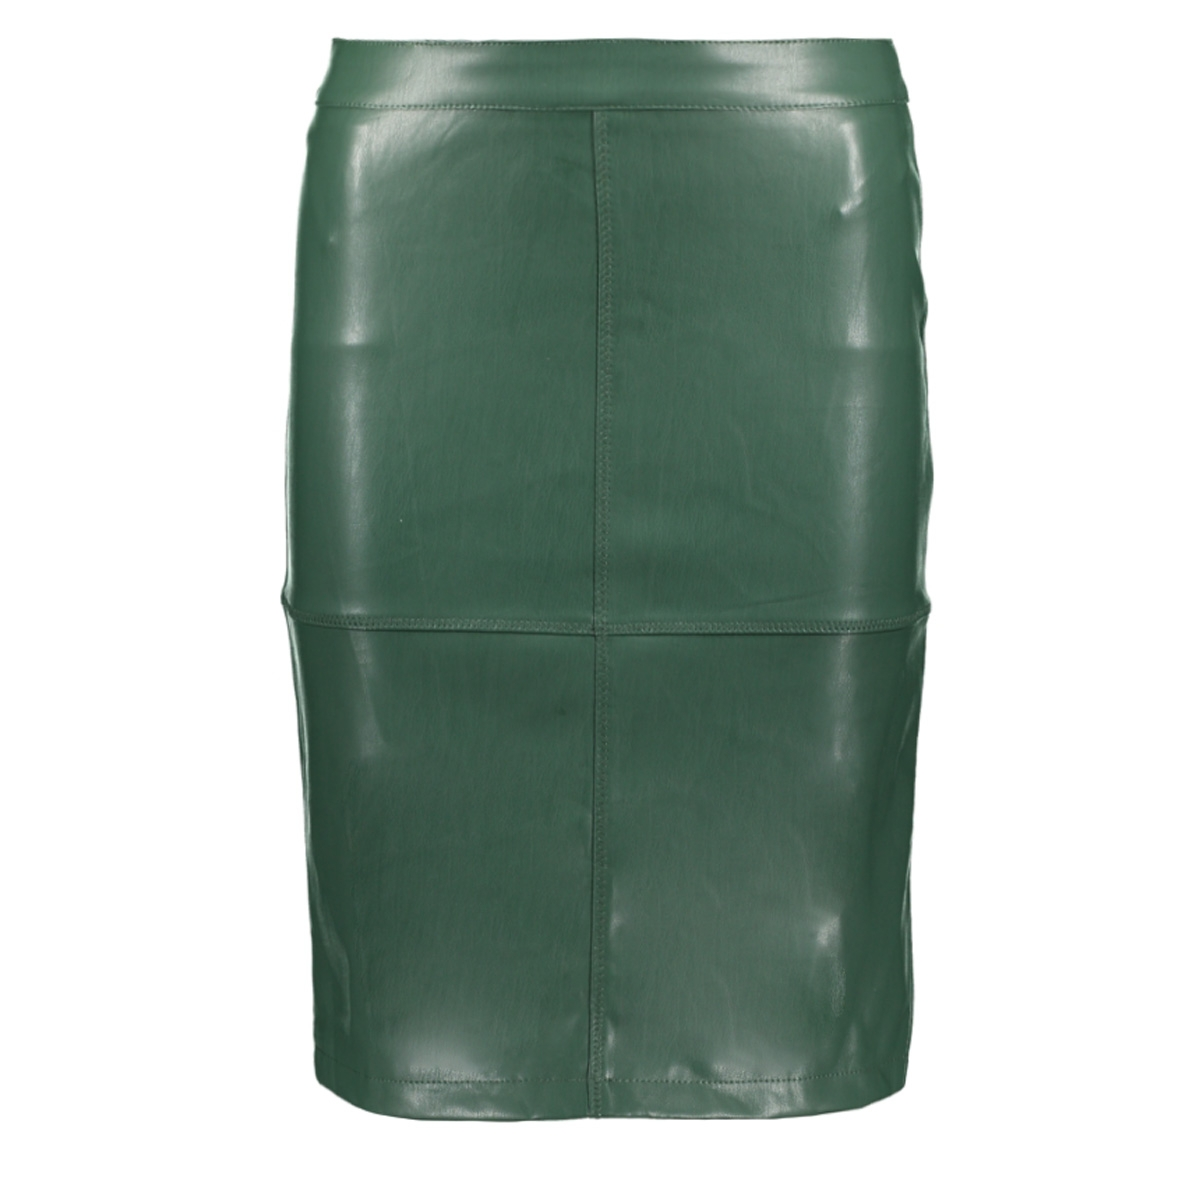 vipen new skirt-fav 14043497 vila rok garden topiary